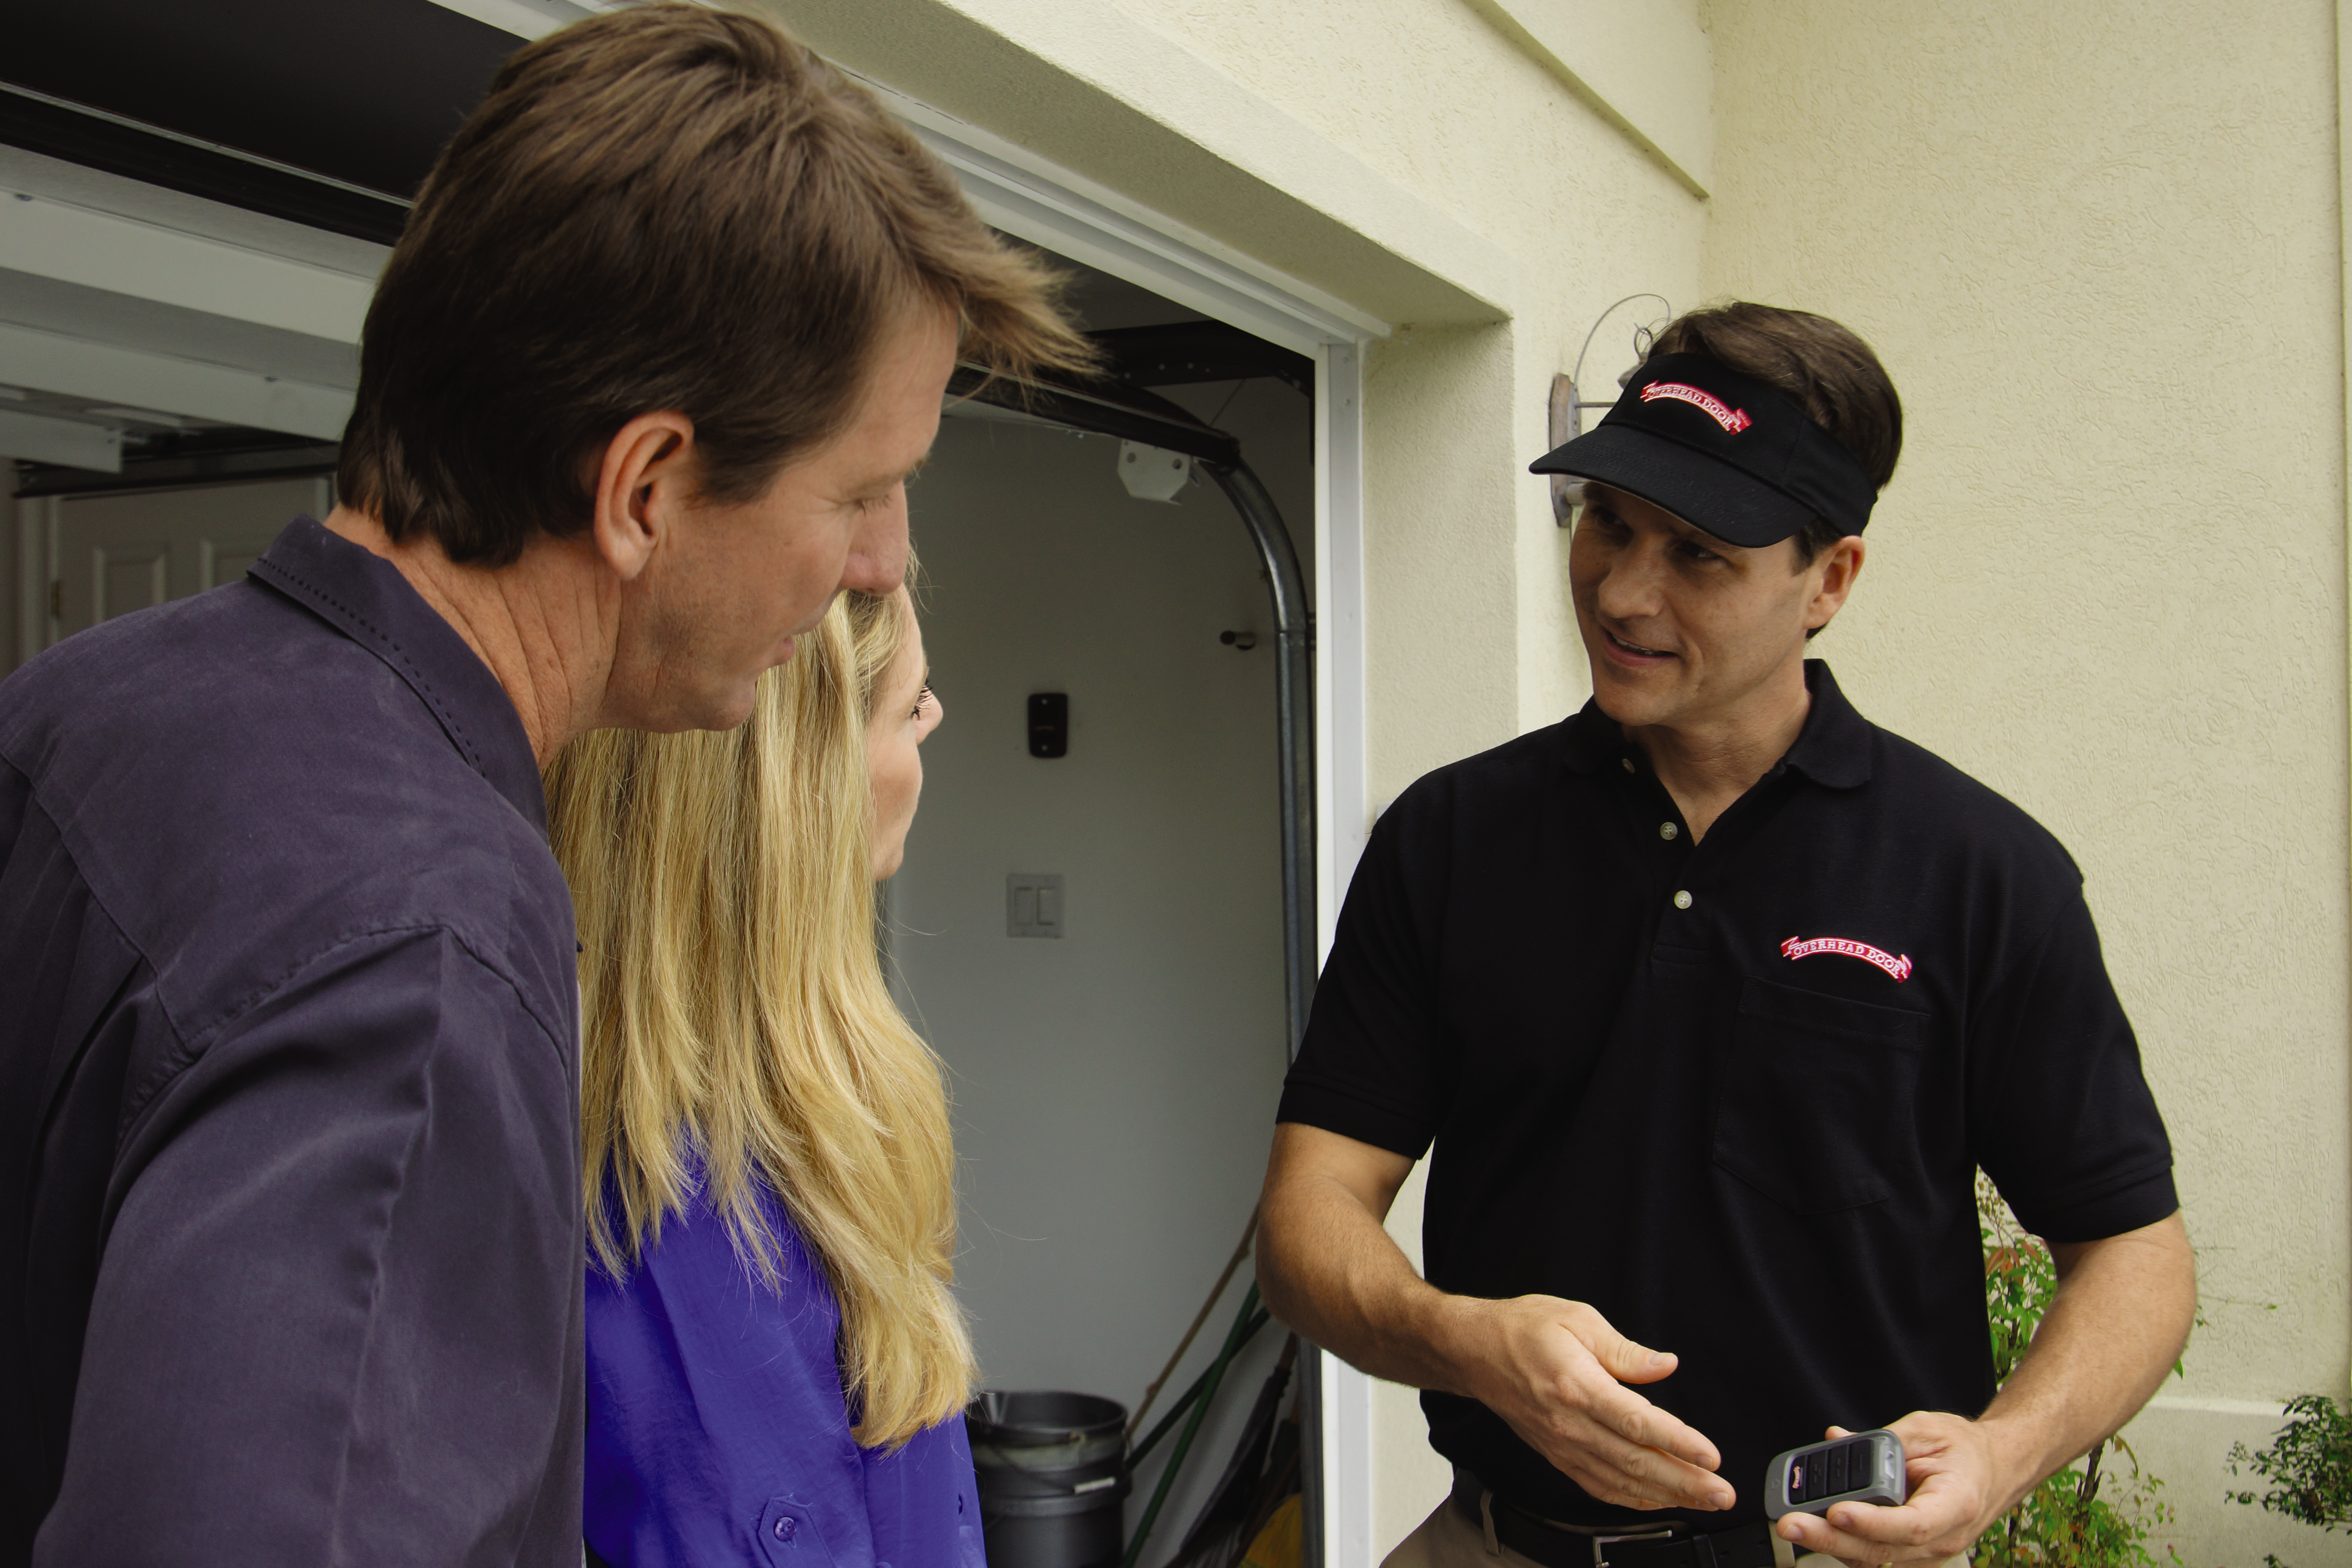 Overhead Door Company of Central Jersey's fully trained technicians is ready to visit your home to diagnose and repair most door system problems on the same visit